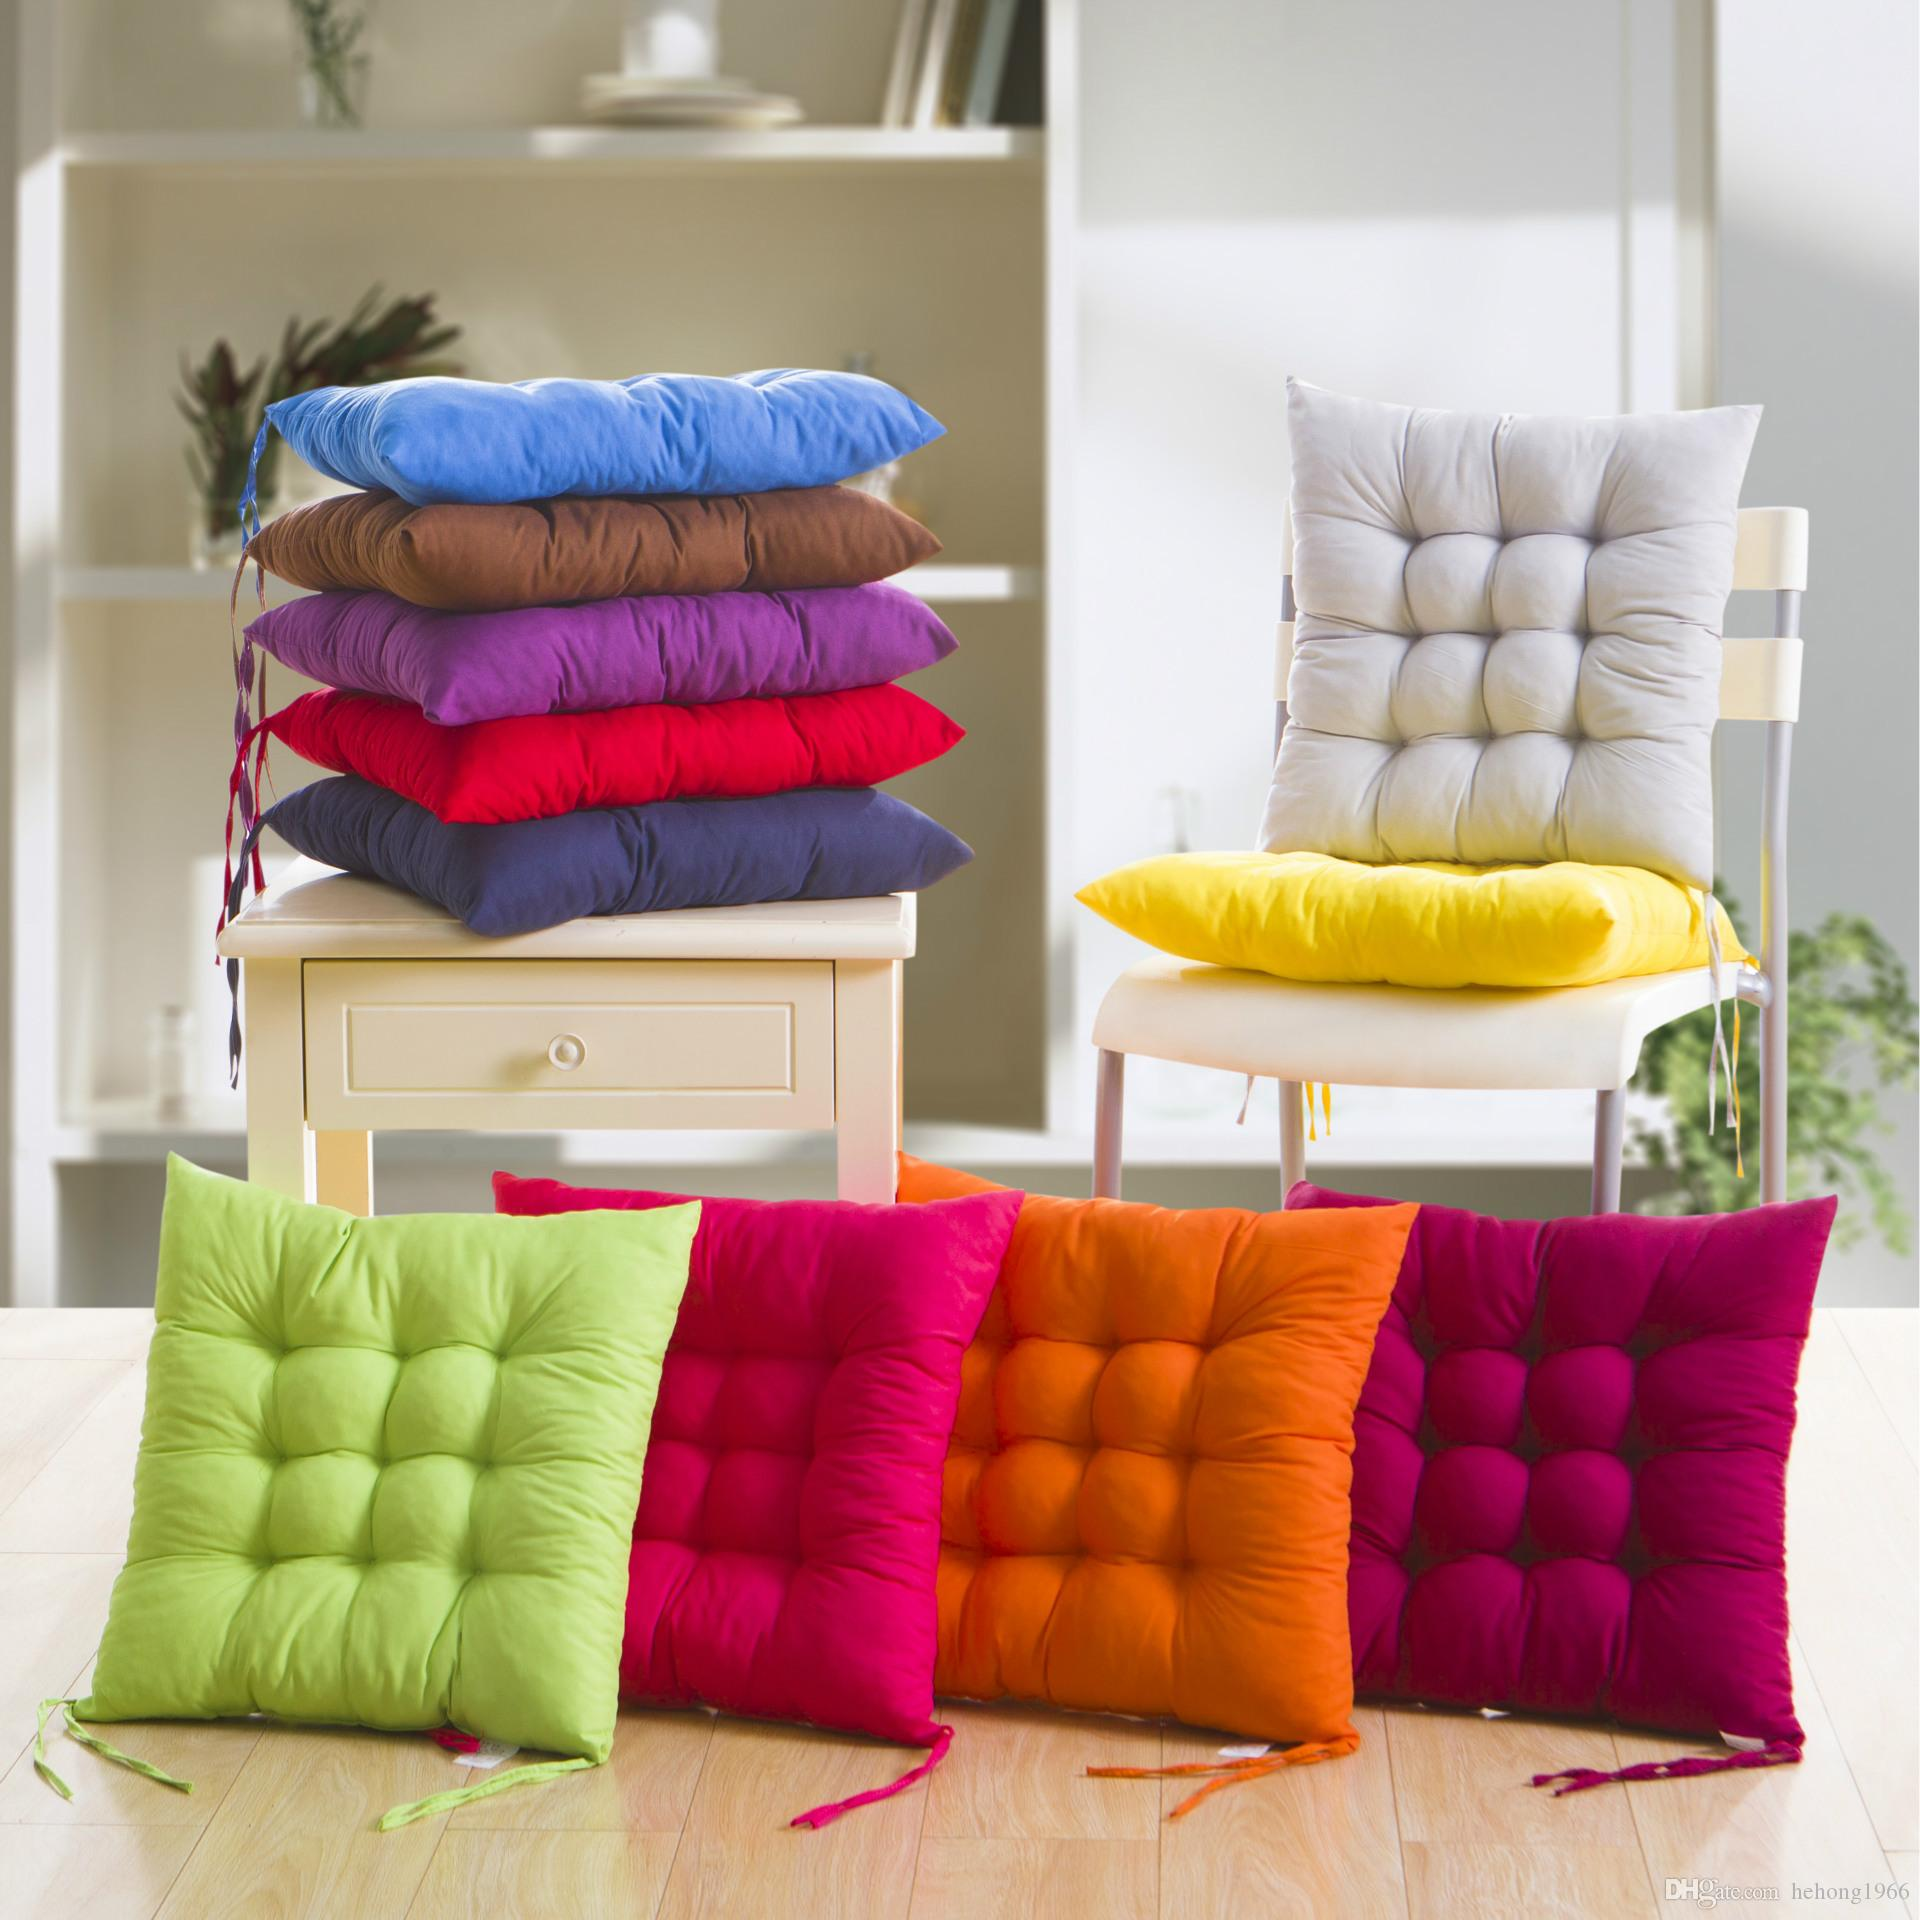 Soft Cushion Home Office Sofa Chair Tatami Cushions Binding Strap Design Solid Color Pillow In Autumn And Winter 4pj F R